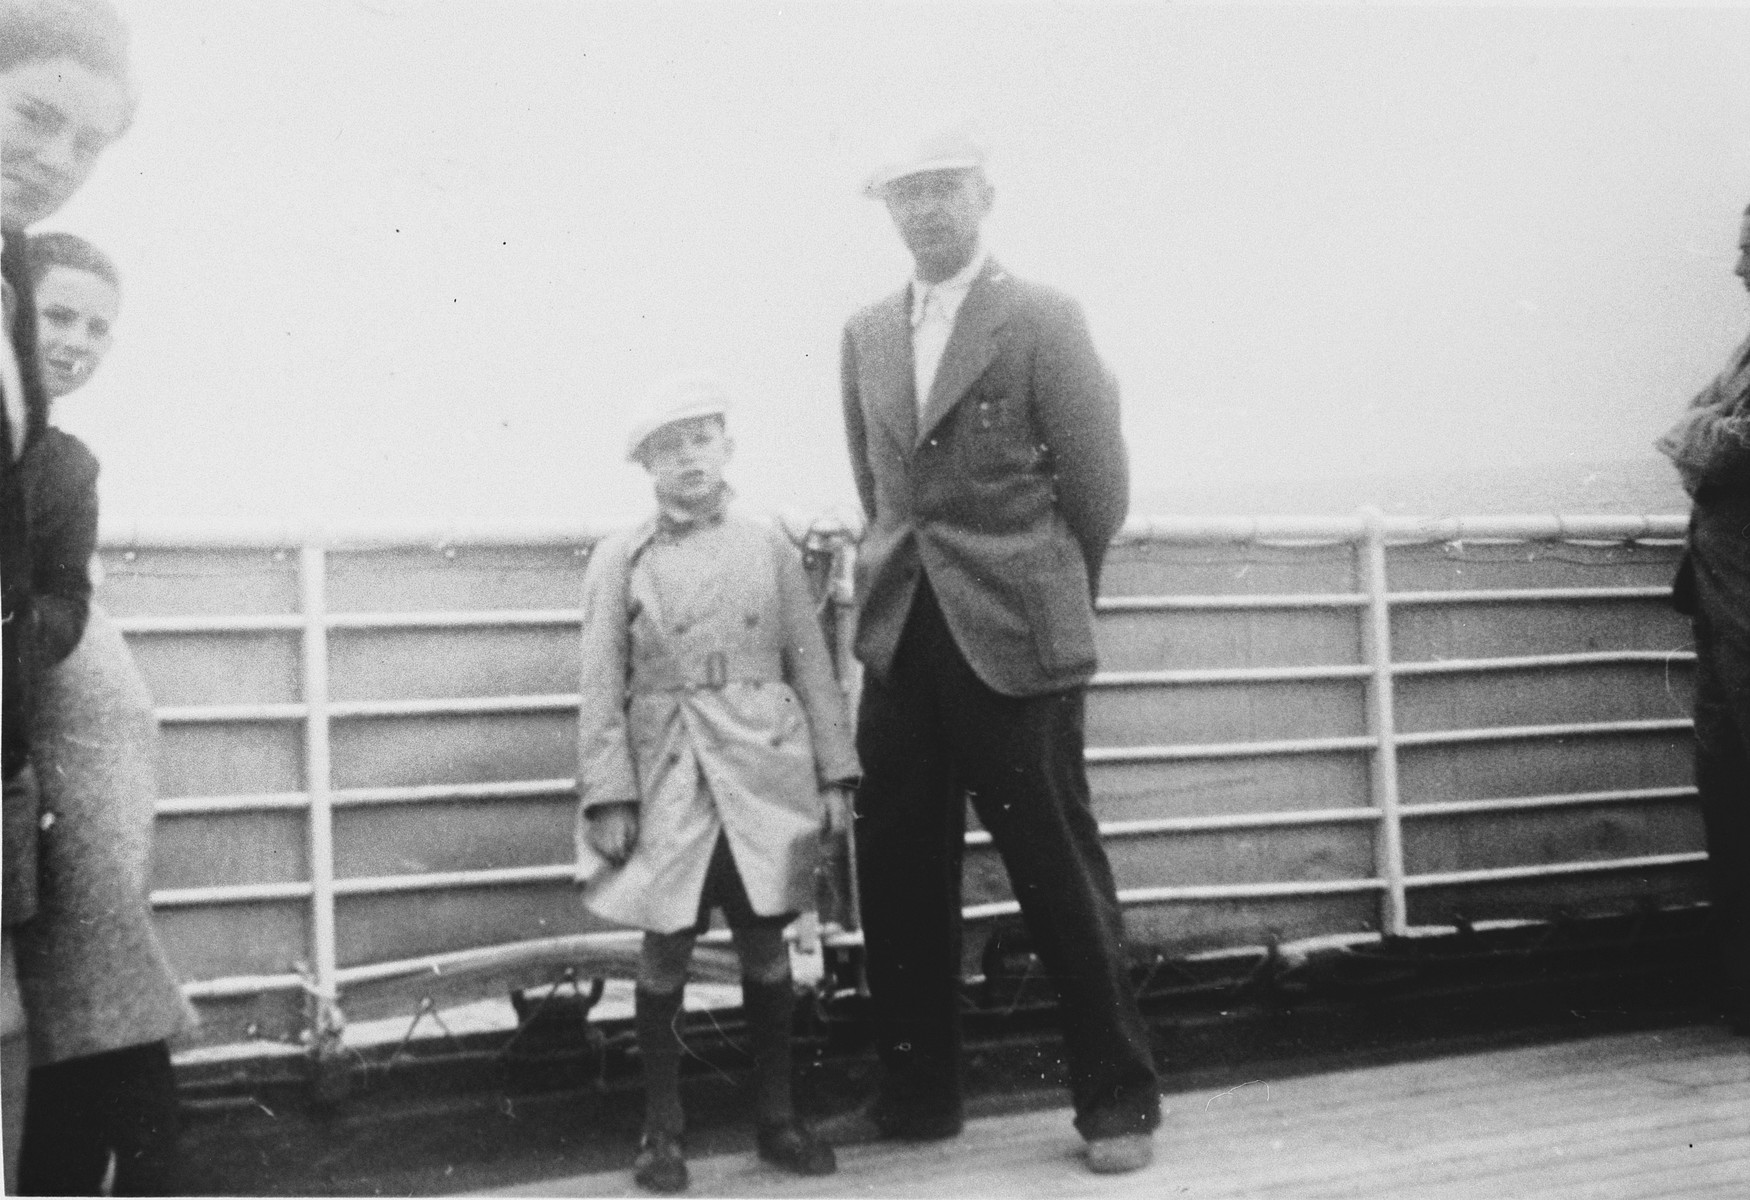 Peter and Jan Chraplewski pose on the deck of the St. Louis.